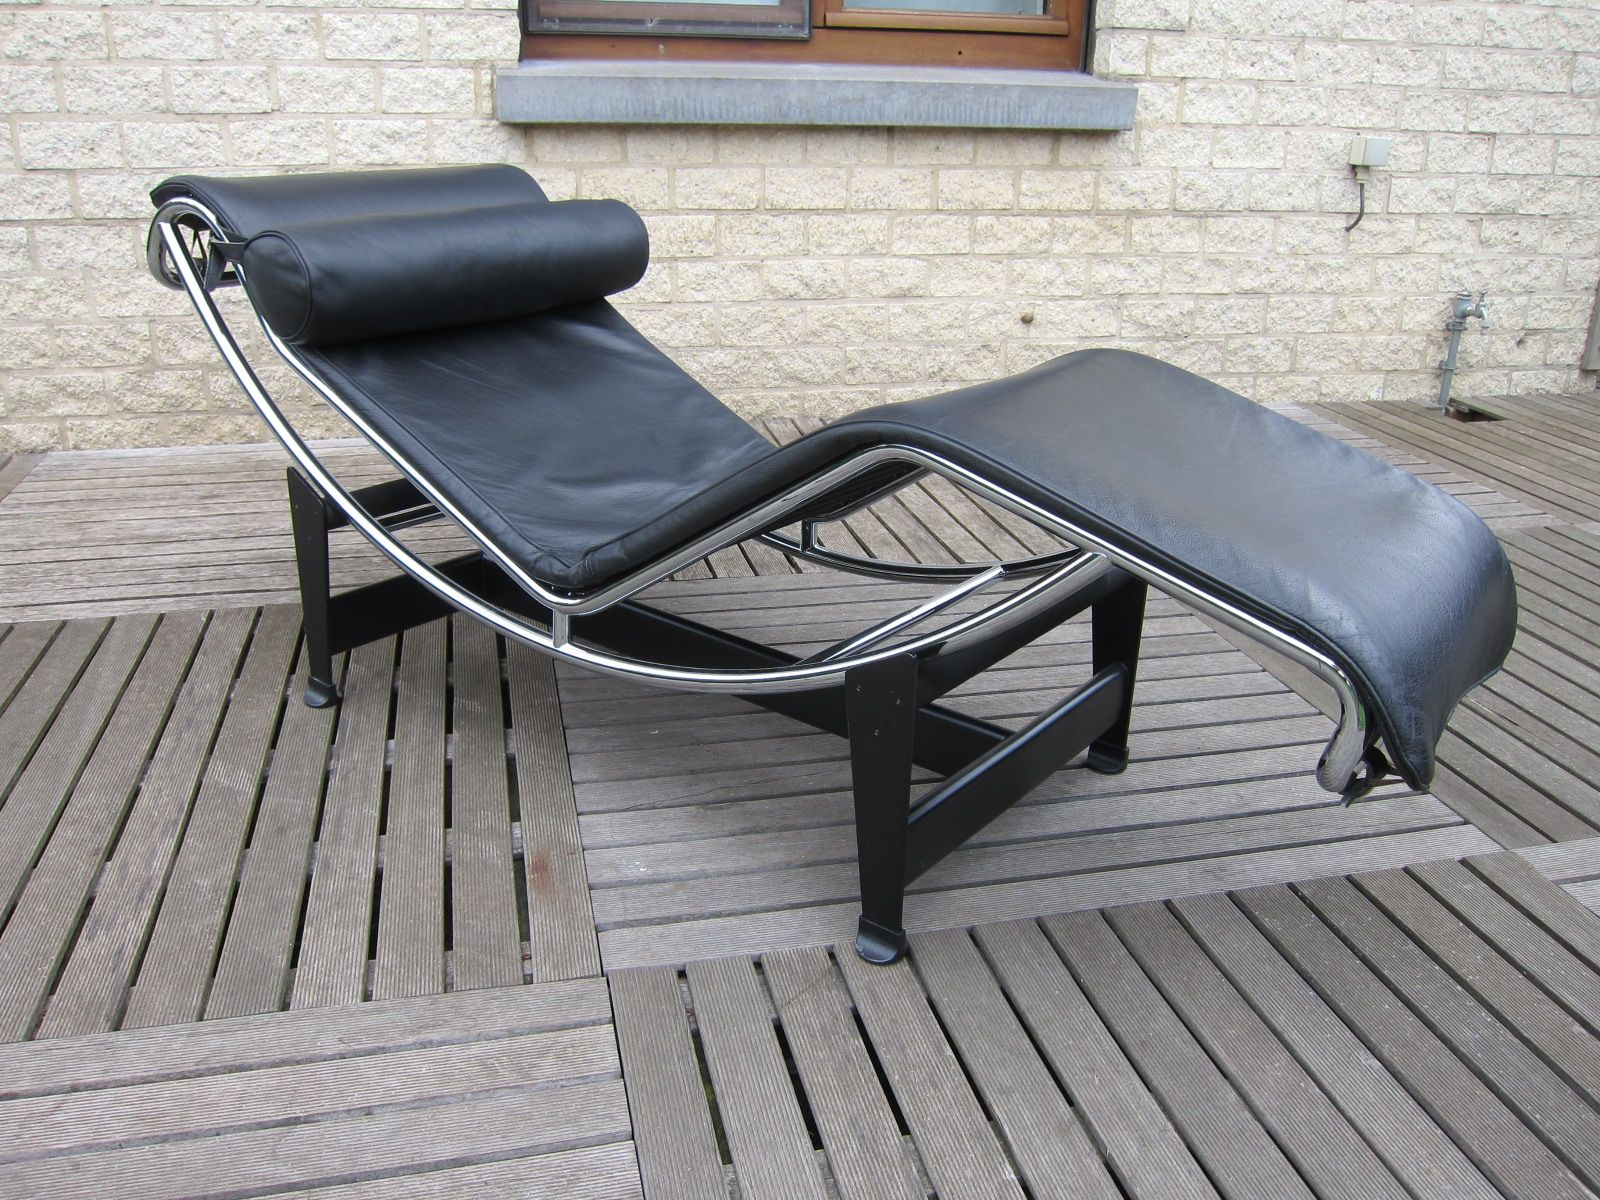 Vintage lc4 chaise longue by le corbusier pierre for Chaise lounge corbusier